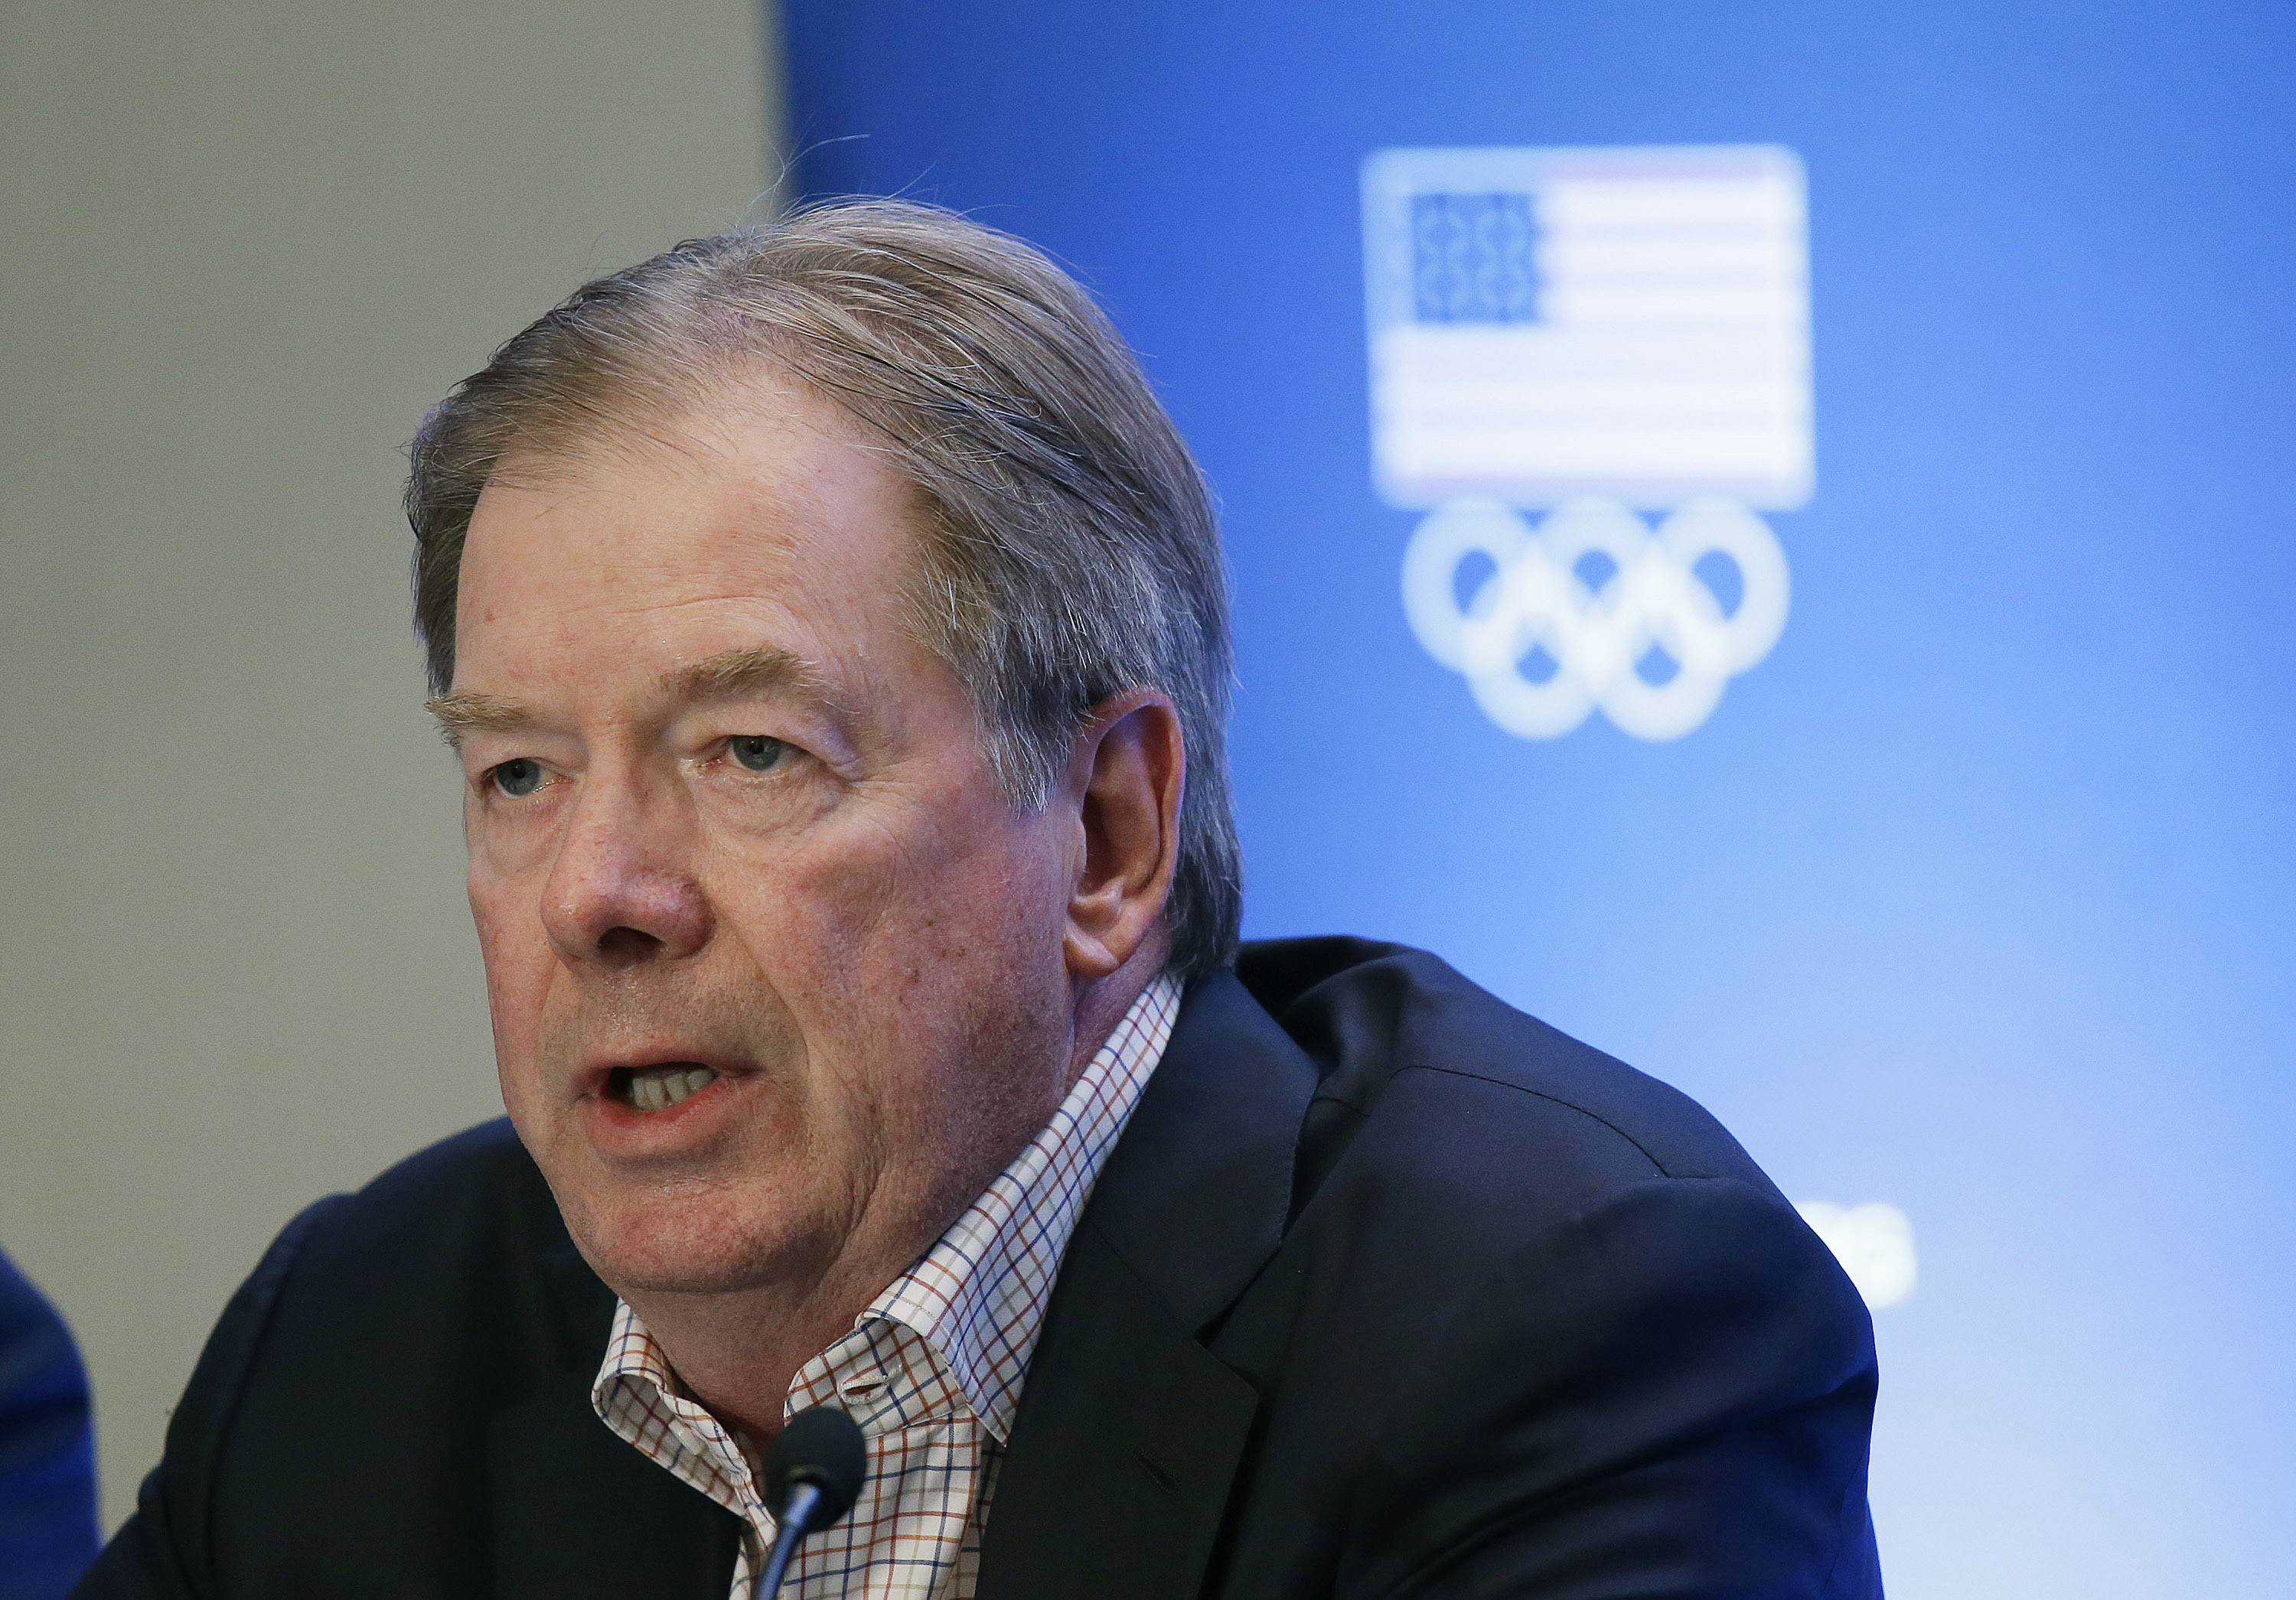 "<p>U.S. Olympic Committee Chairman Larry Probst speaks during a news conference in Redwood City, Calif. on <span style=""color: rgb(64, 69, 64);"">June 30, 2015</span>. Larry Probst will step down as chairman of the U.S. Olympic Committee at the end of 2018.</p>"